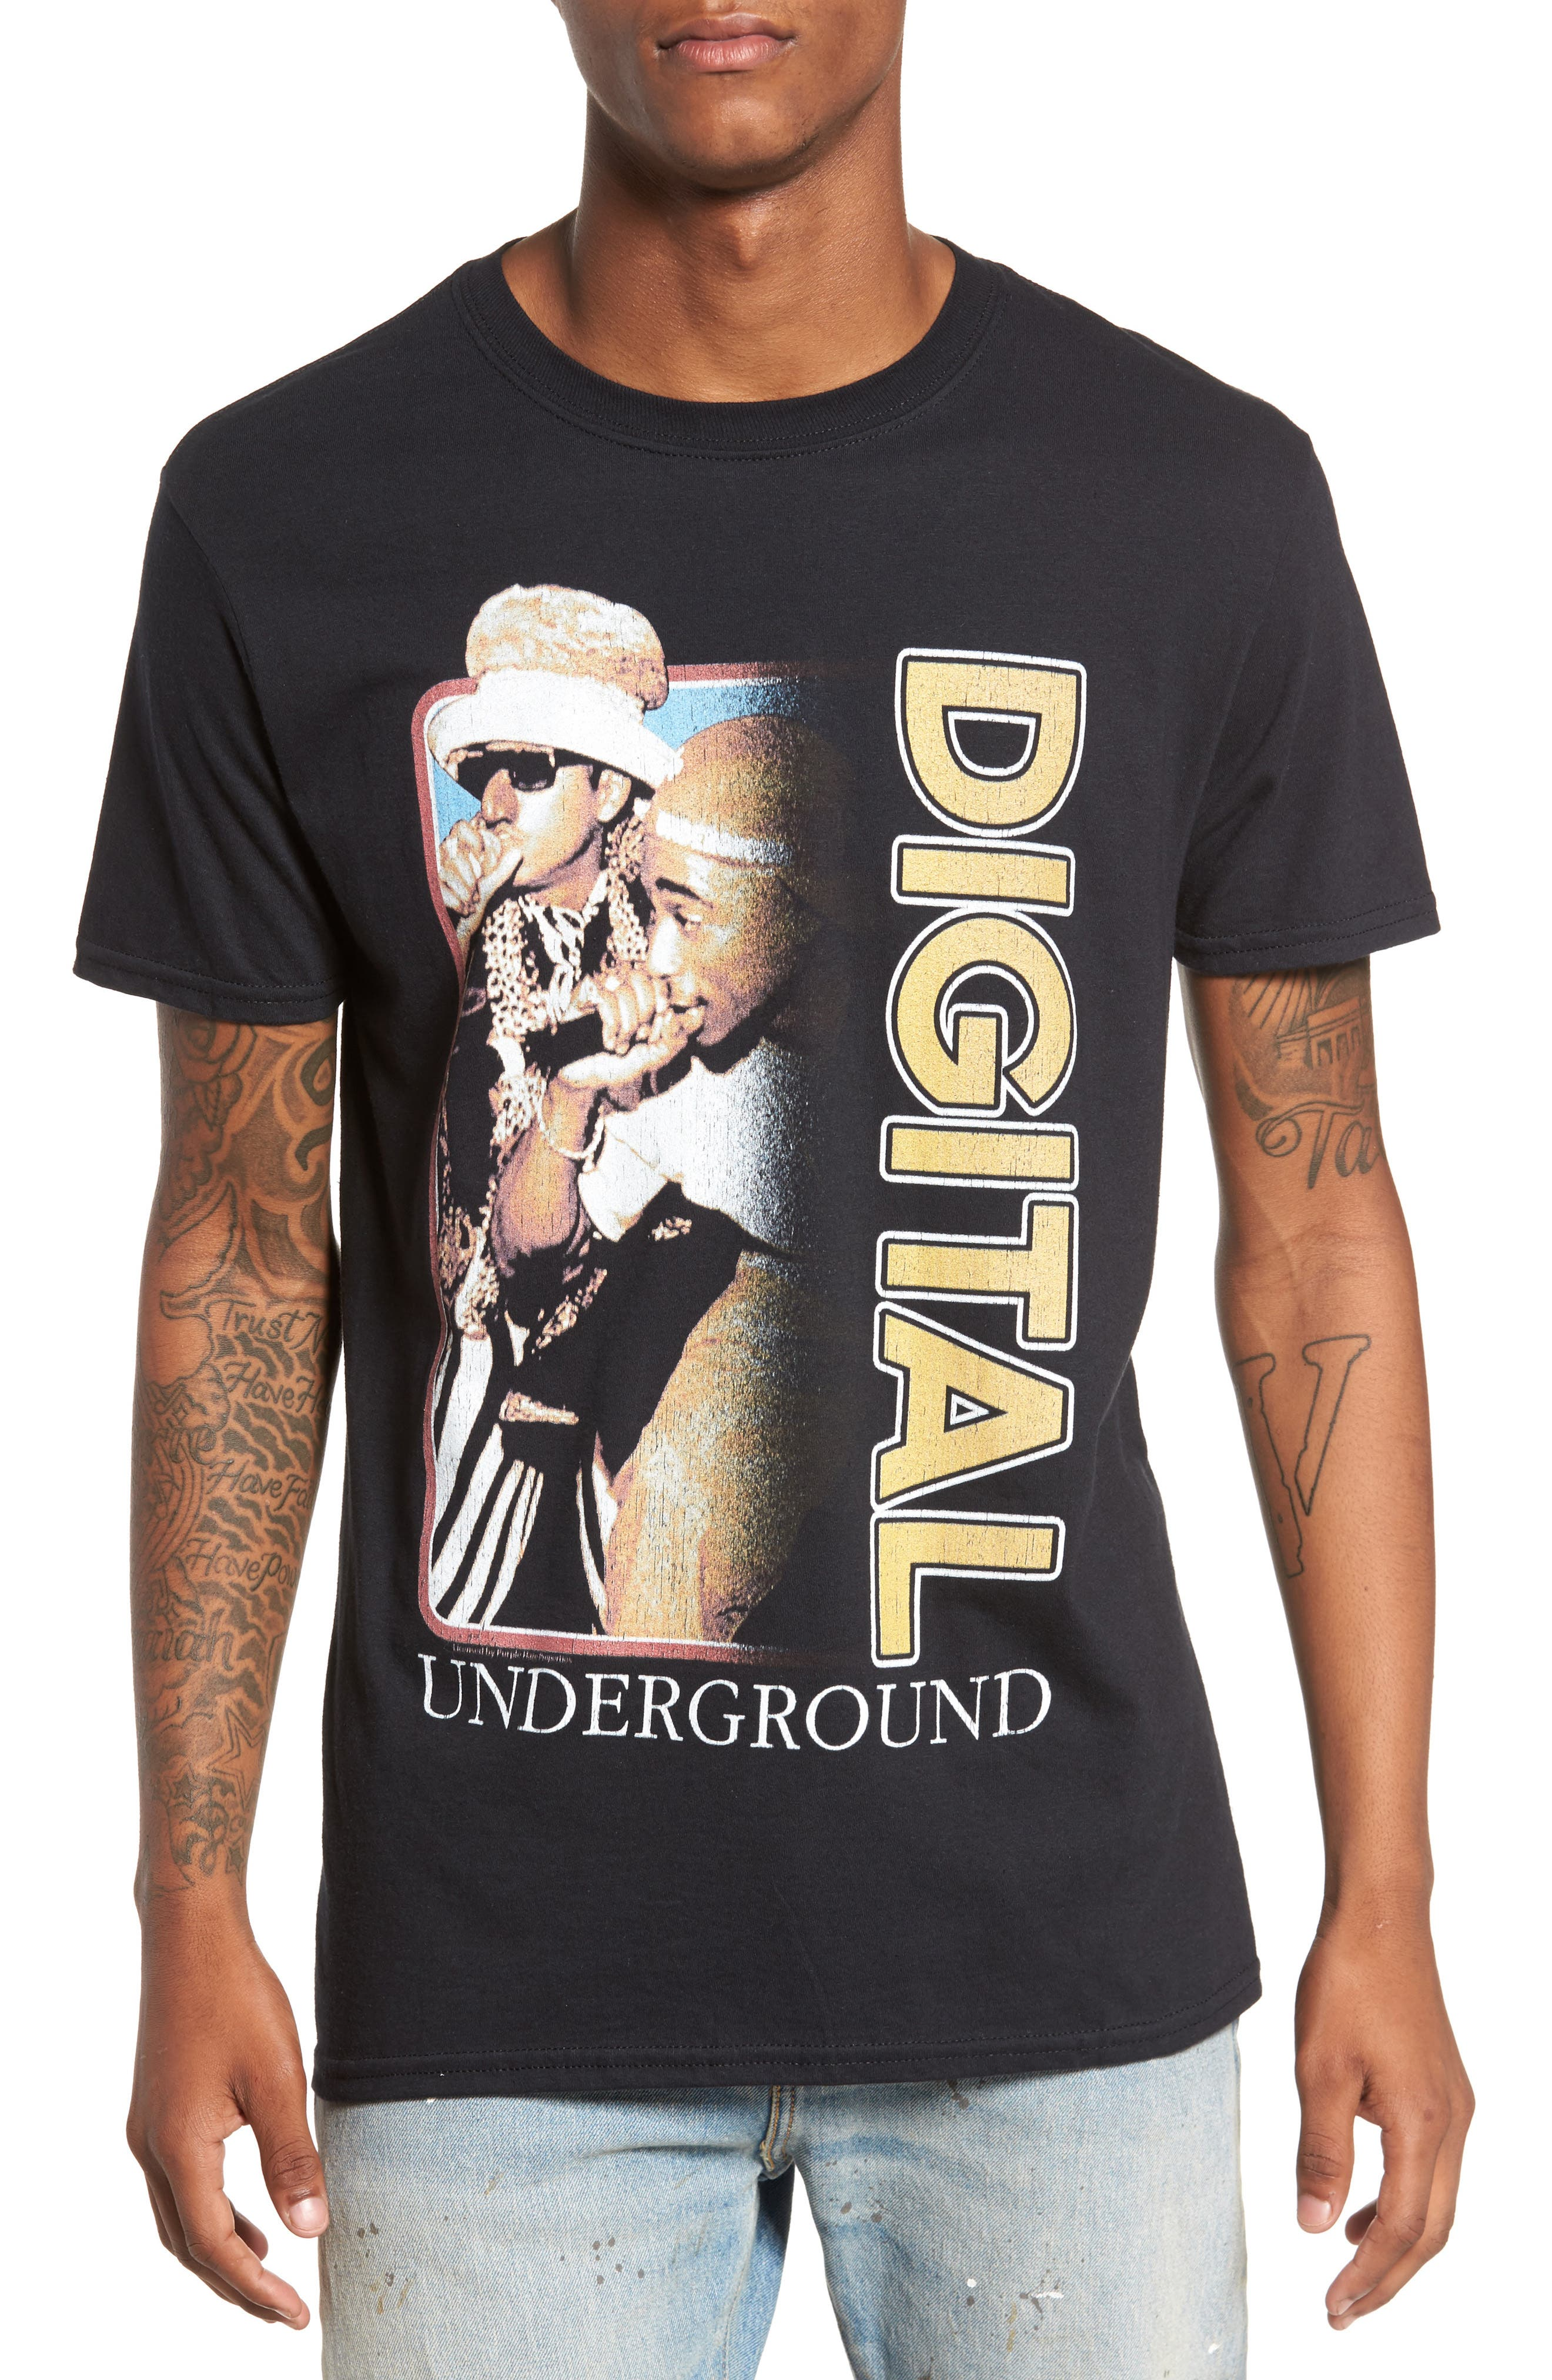 Alternate Image 1 Selected - The Rail Digital Underground T-Shirt